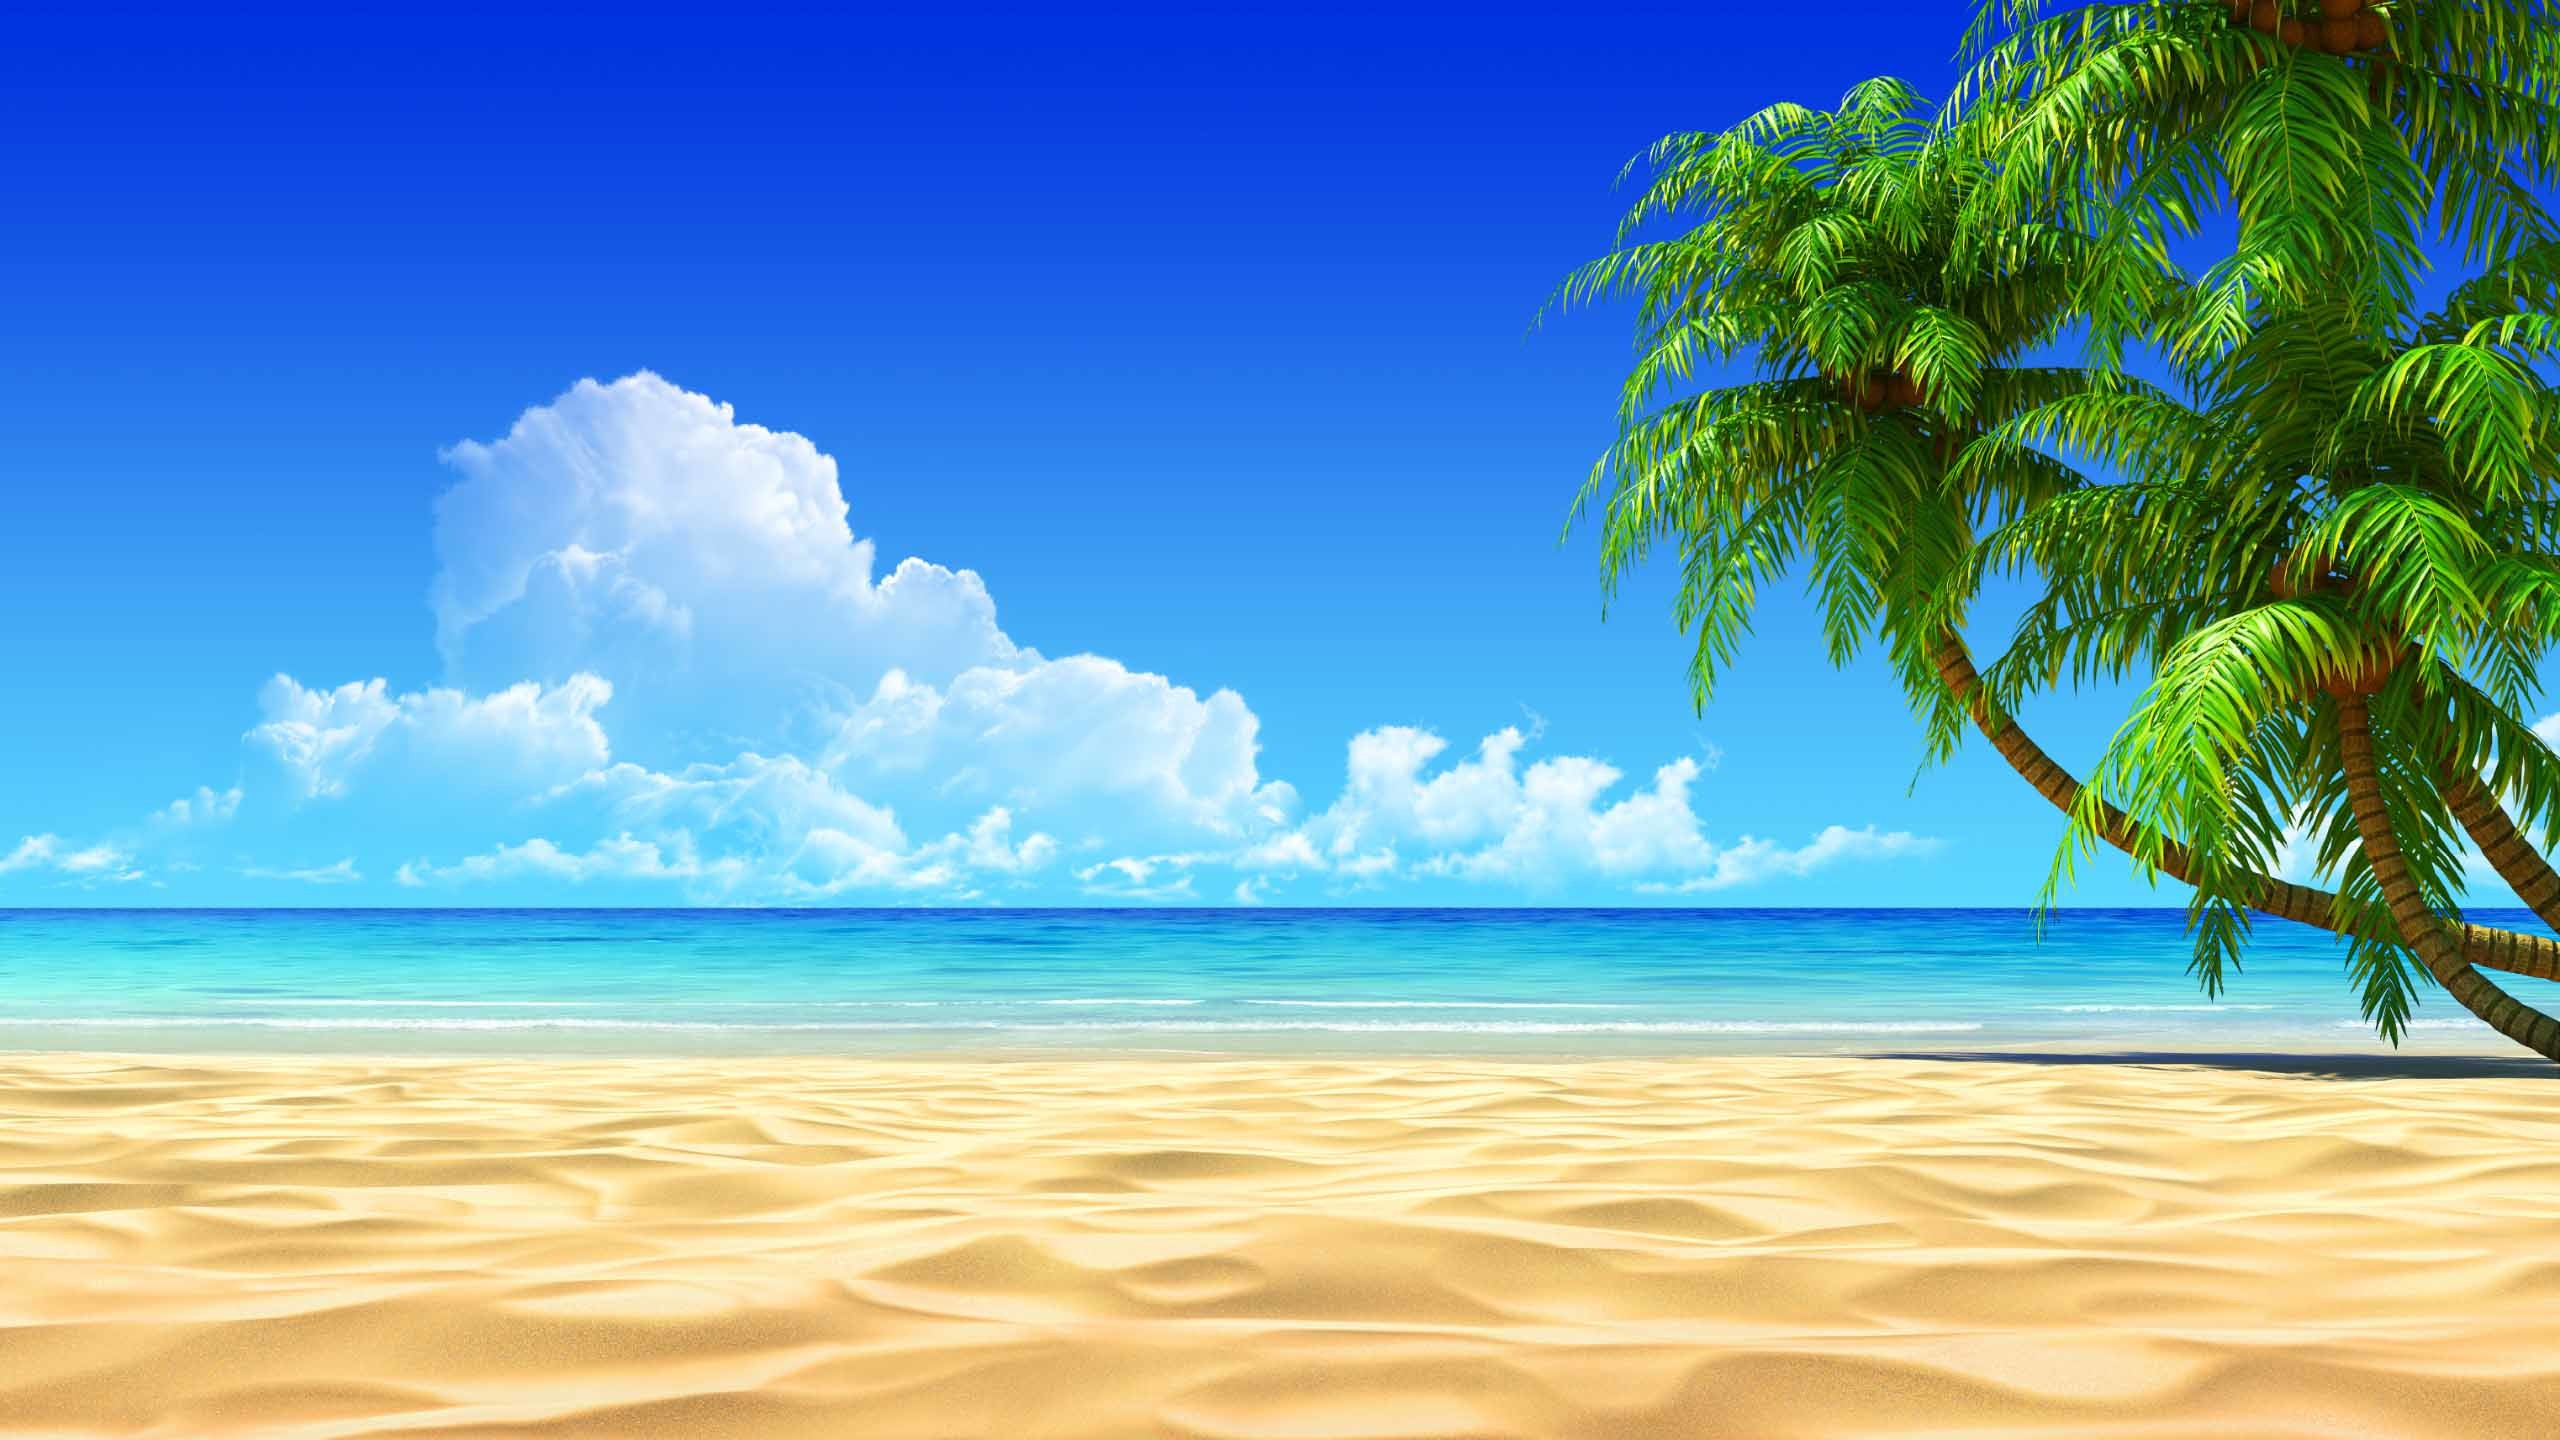 beach wallpaper for computer (54+ images)